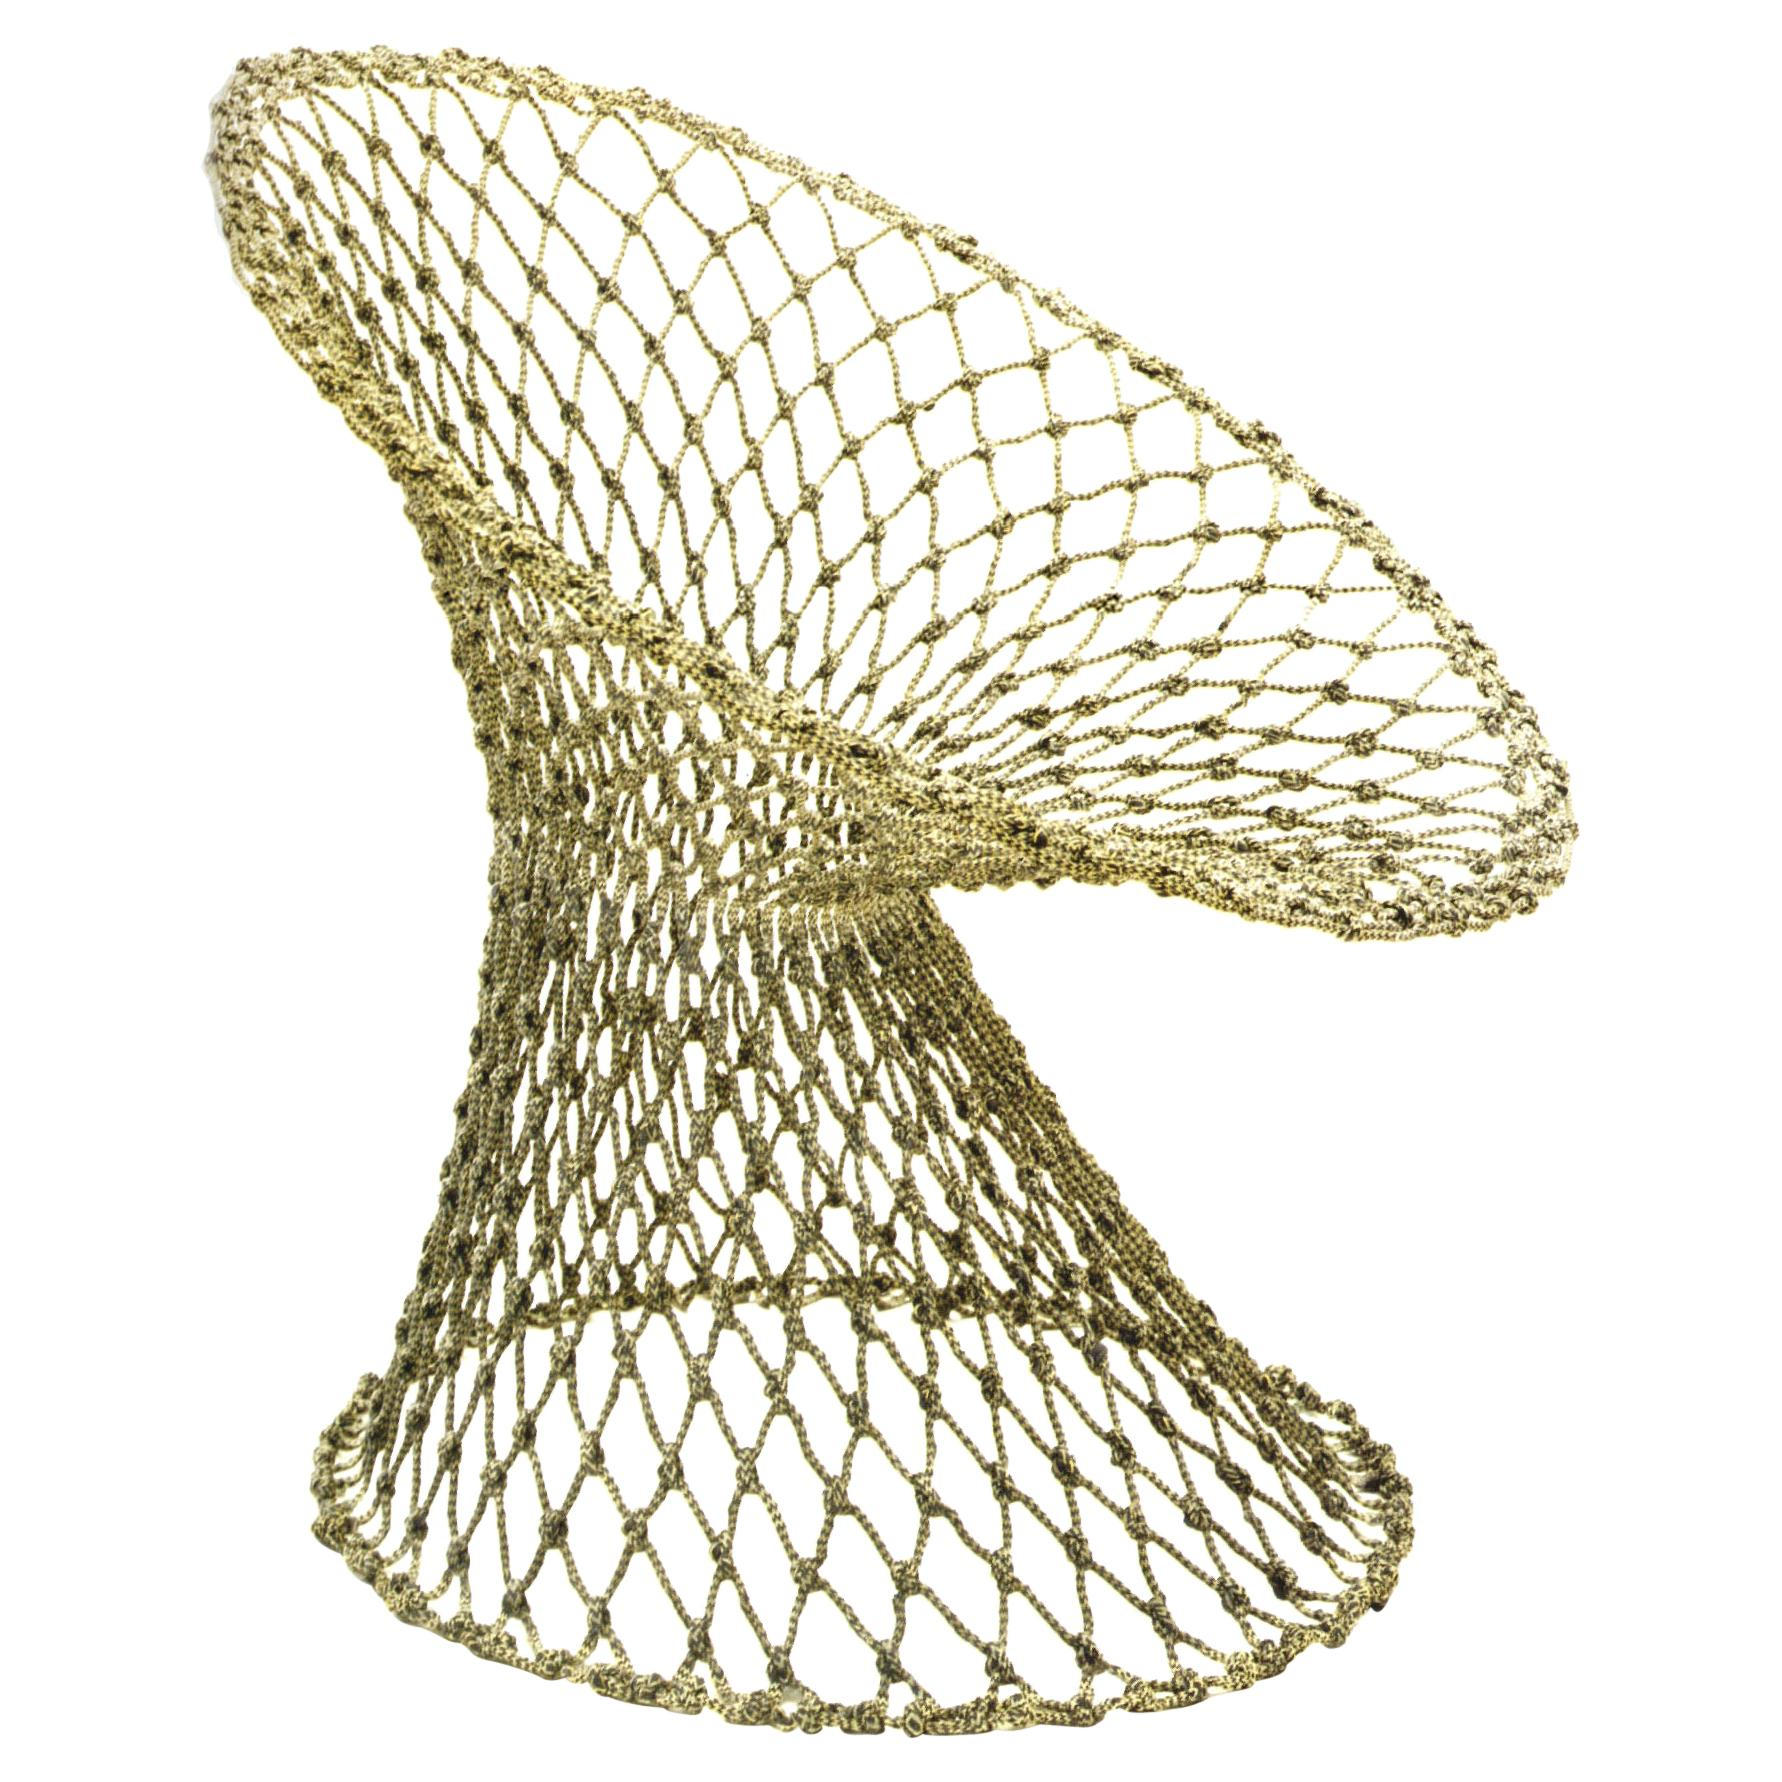 Fishnet Chair, by Marcel Wanders, Hand-Knotted Chair, 2001, Green